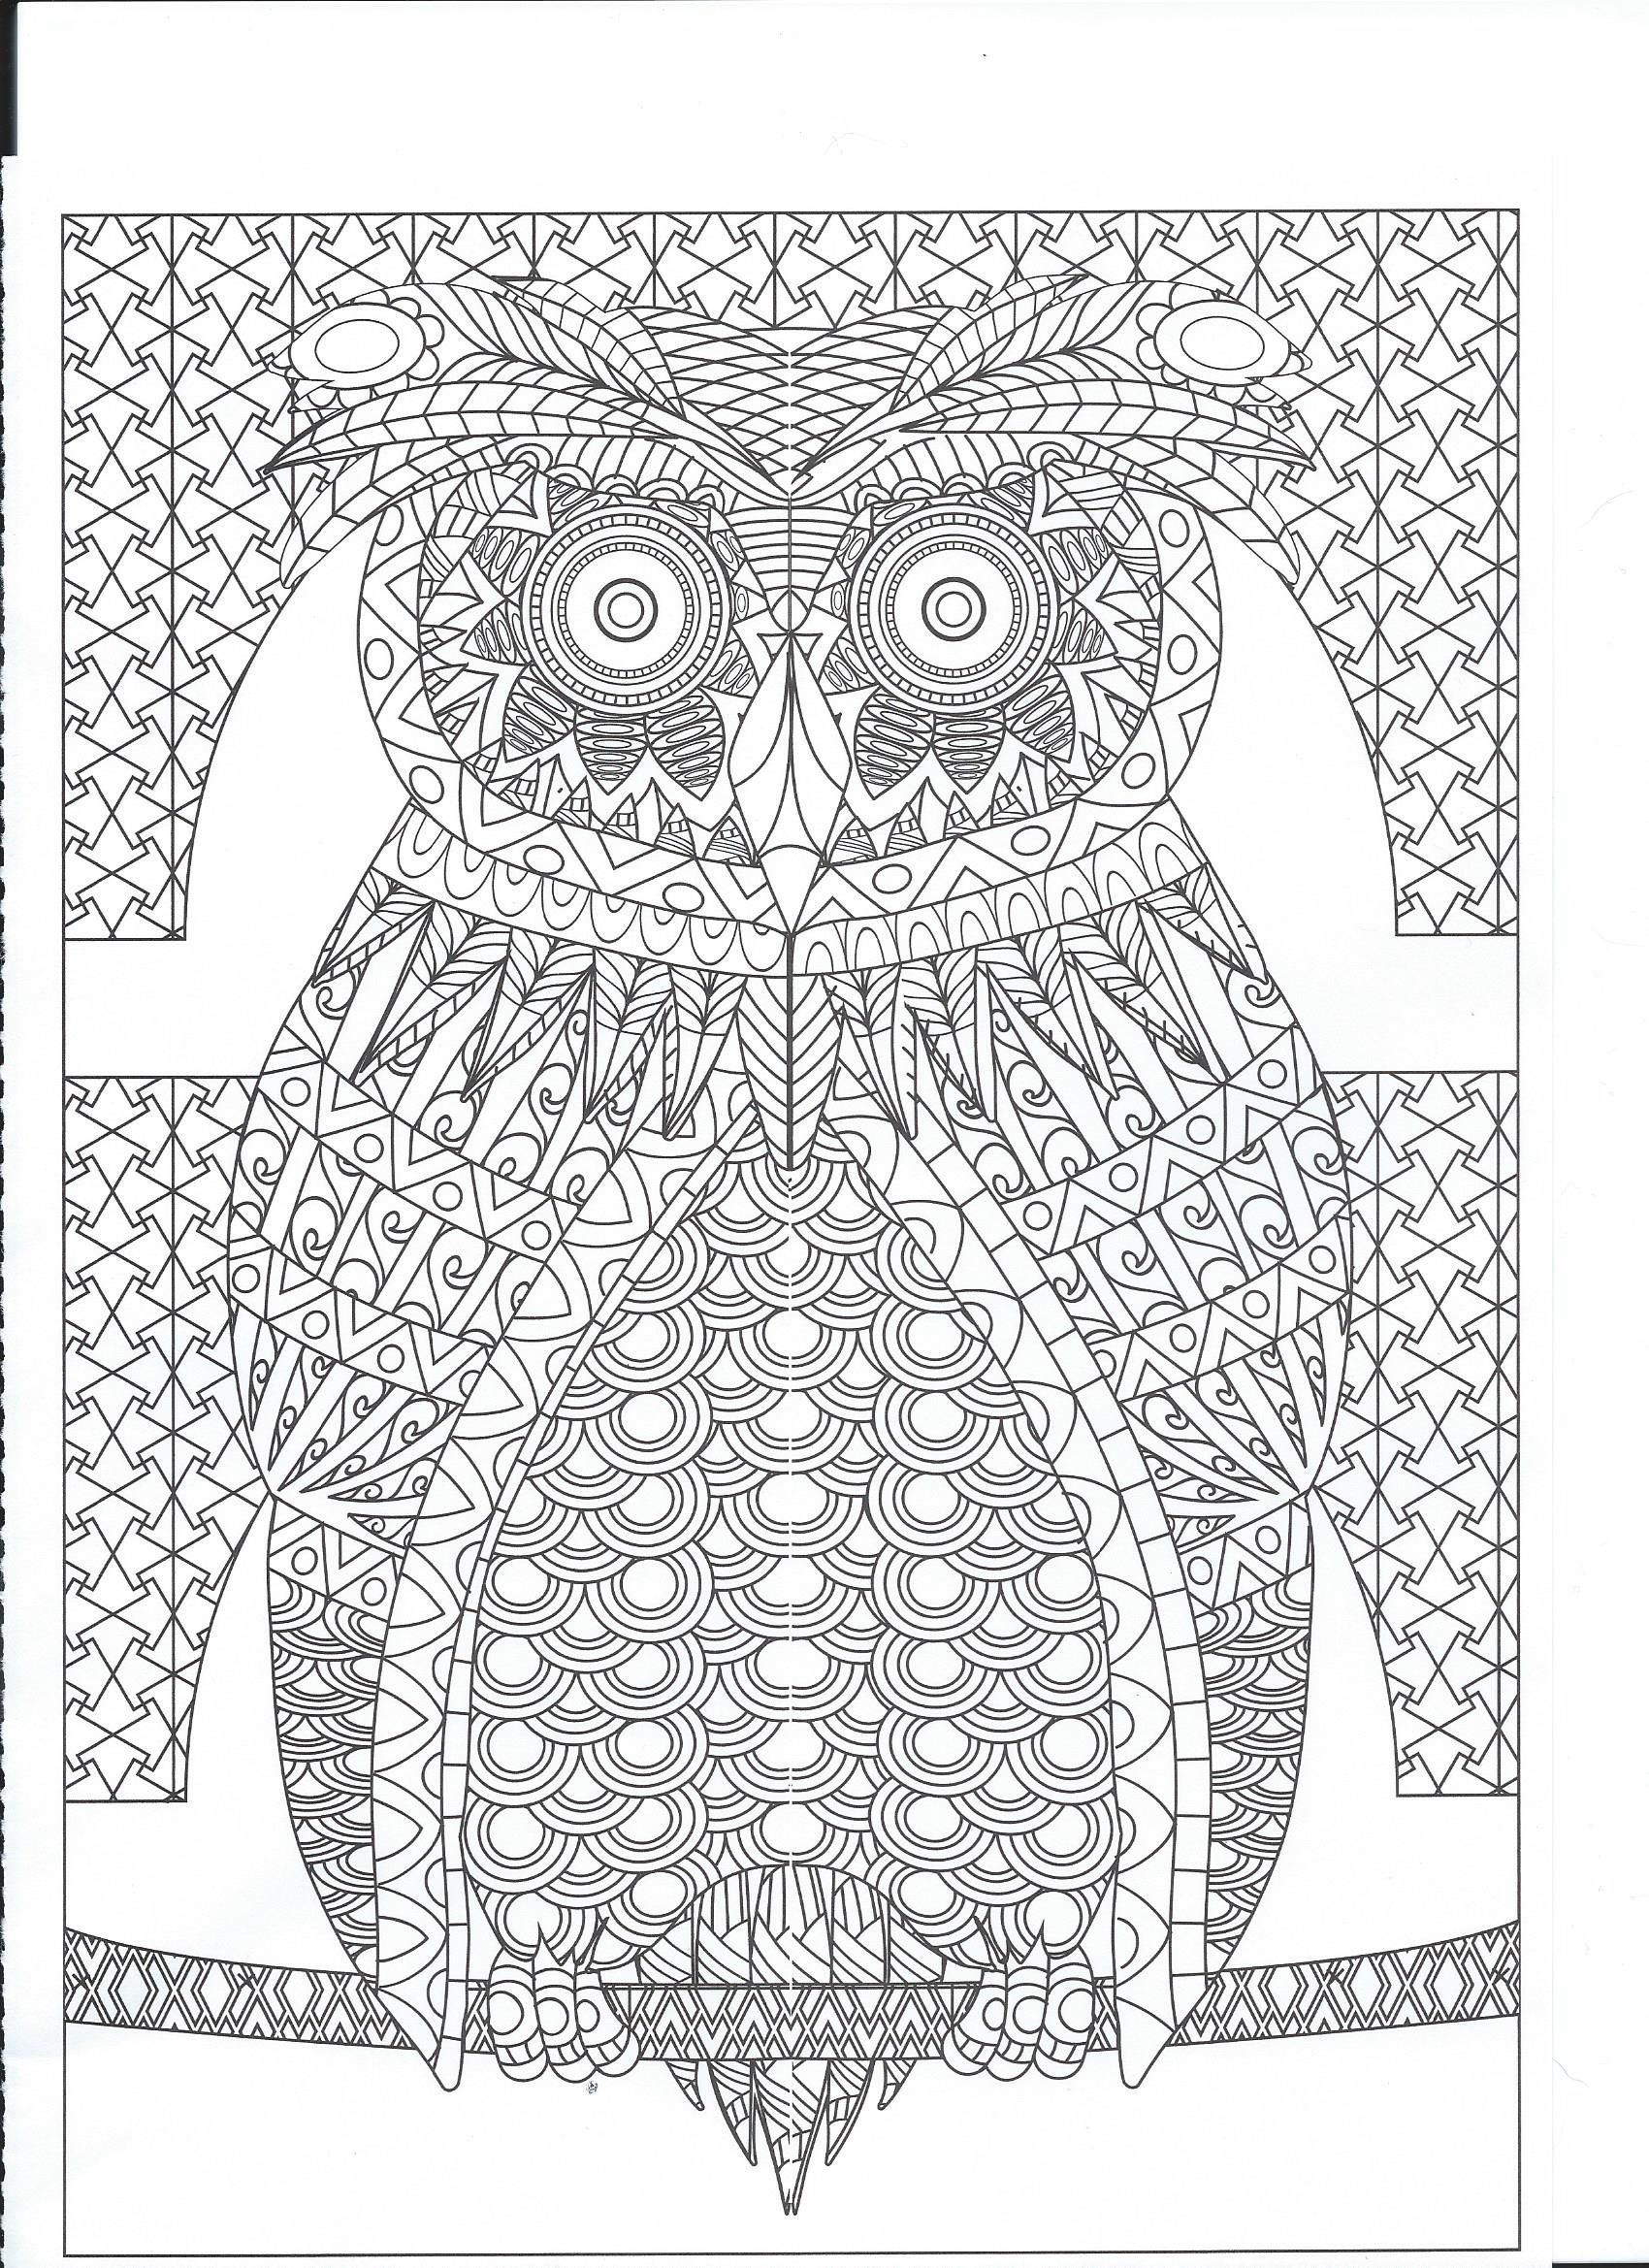 Colouring Pages Animal Pics Owls Zen In Coloring Printable Pictures Owl